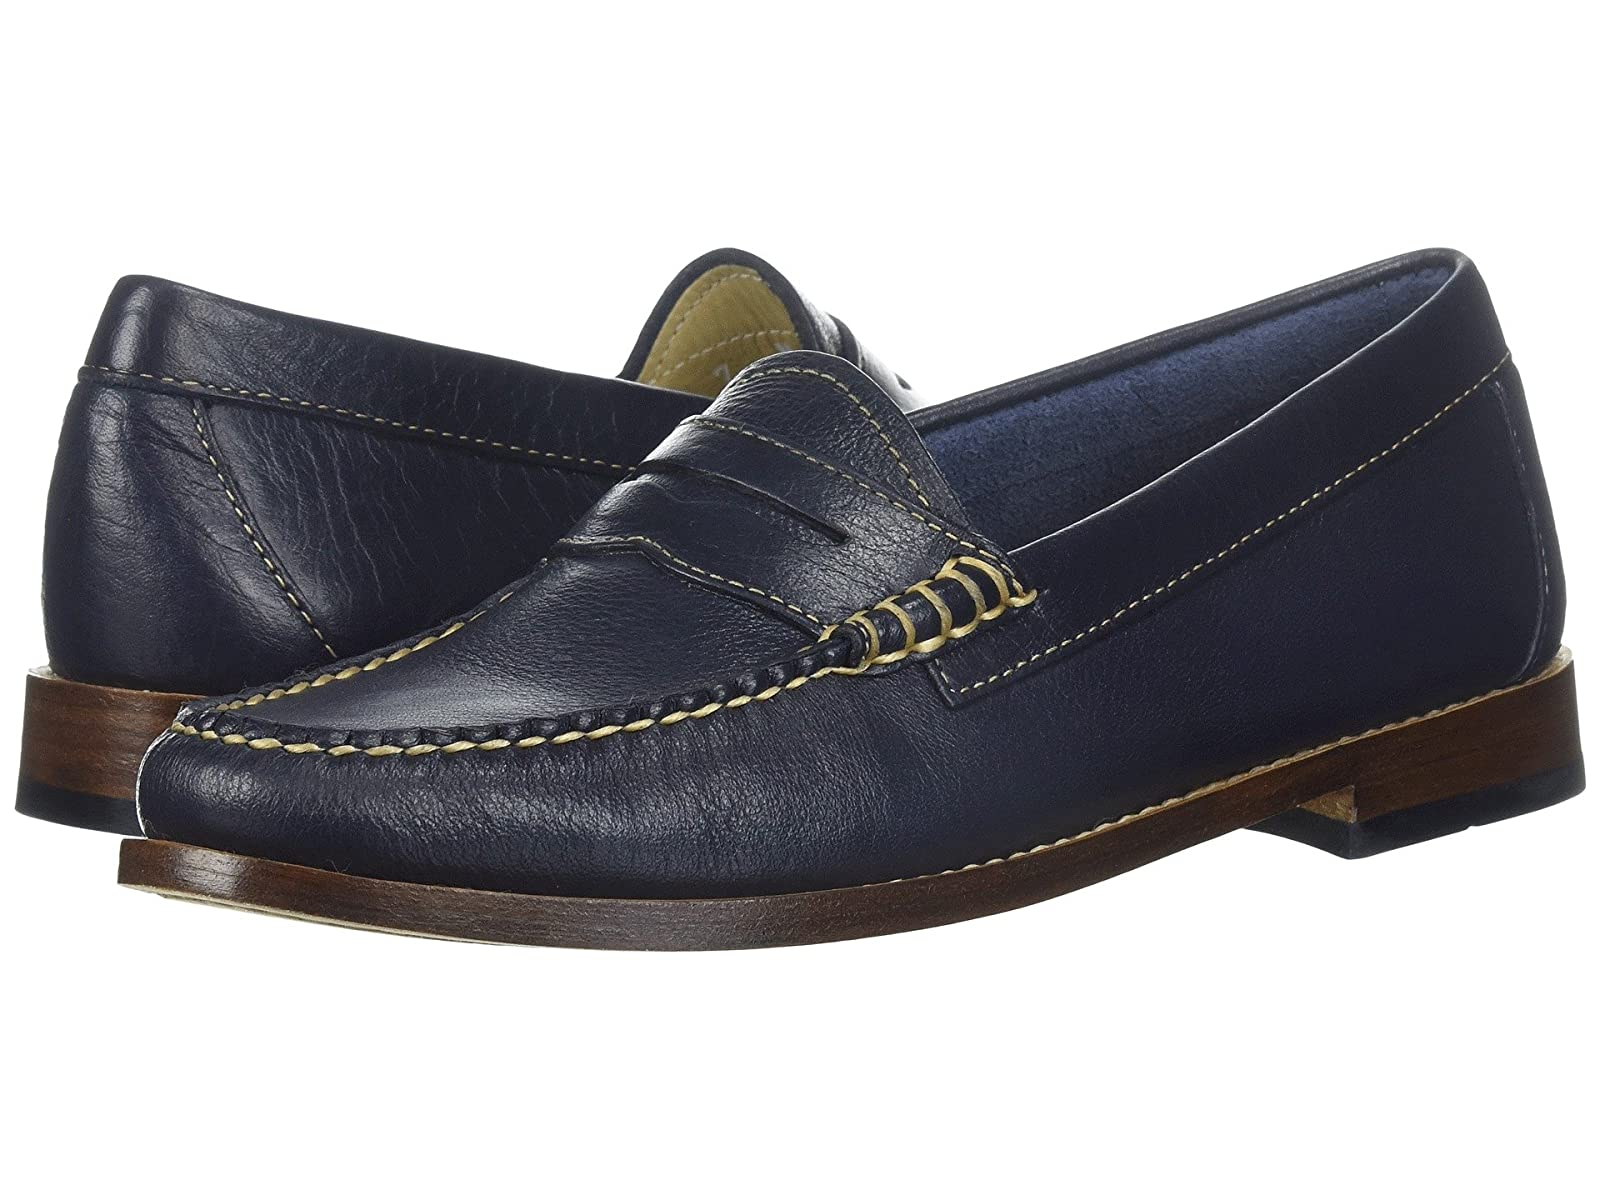 G.H. Bass & Co. Whitney WeejunsAtmospheric grades have affordable shoes